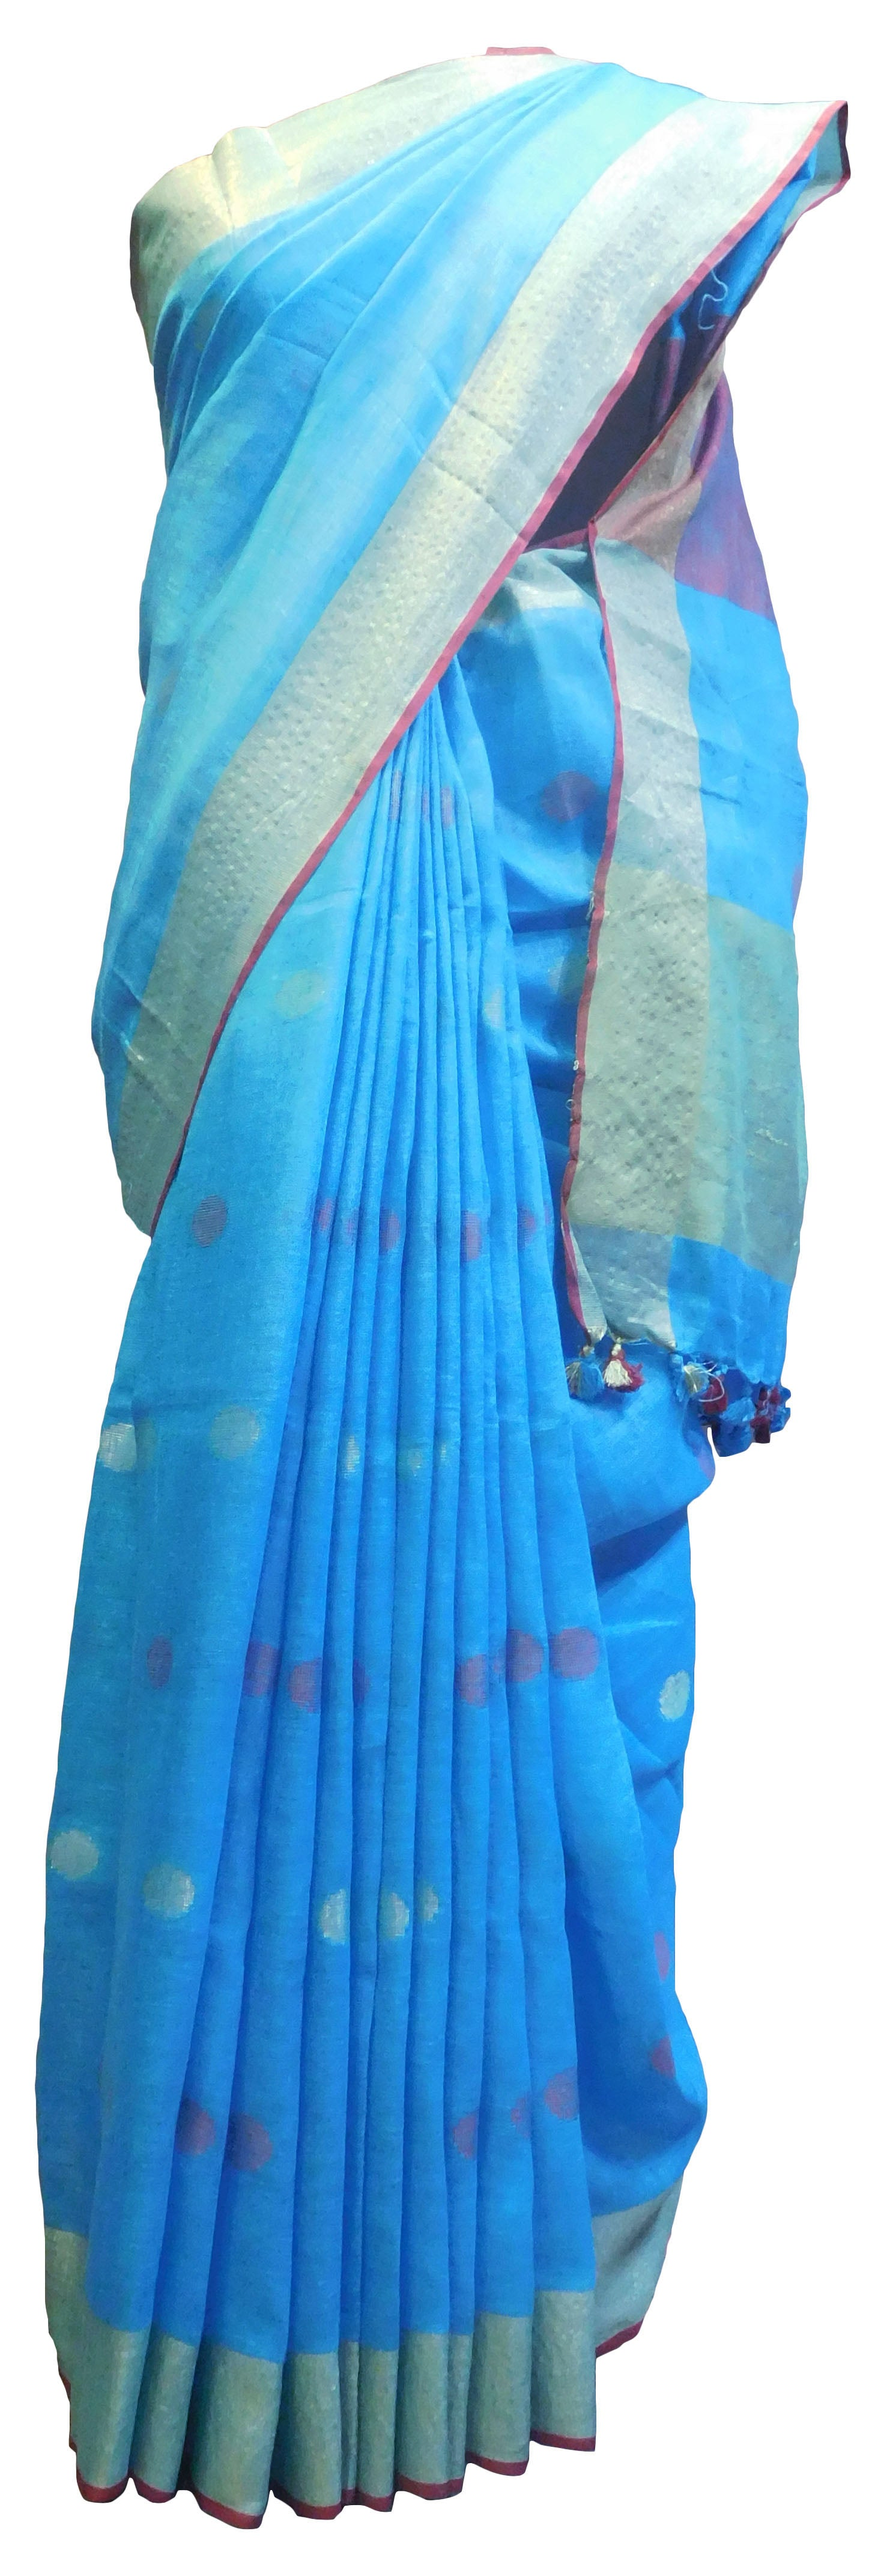 SMSAREE Blue Designer Wedding Partywear Handloom Linen Thread & Zari Hand Embroidery Work Bridal Saree Sari With Blouse Piece E854